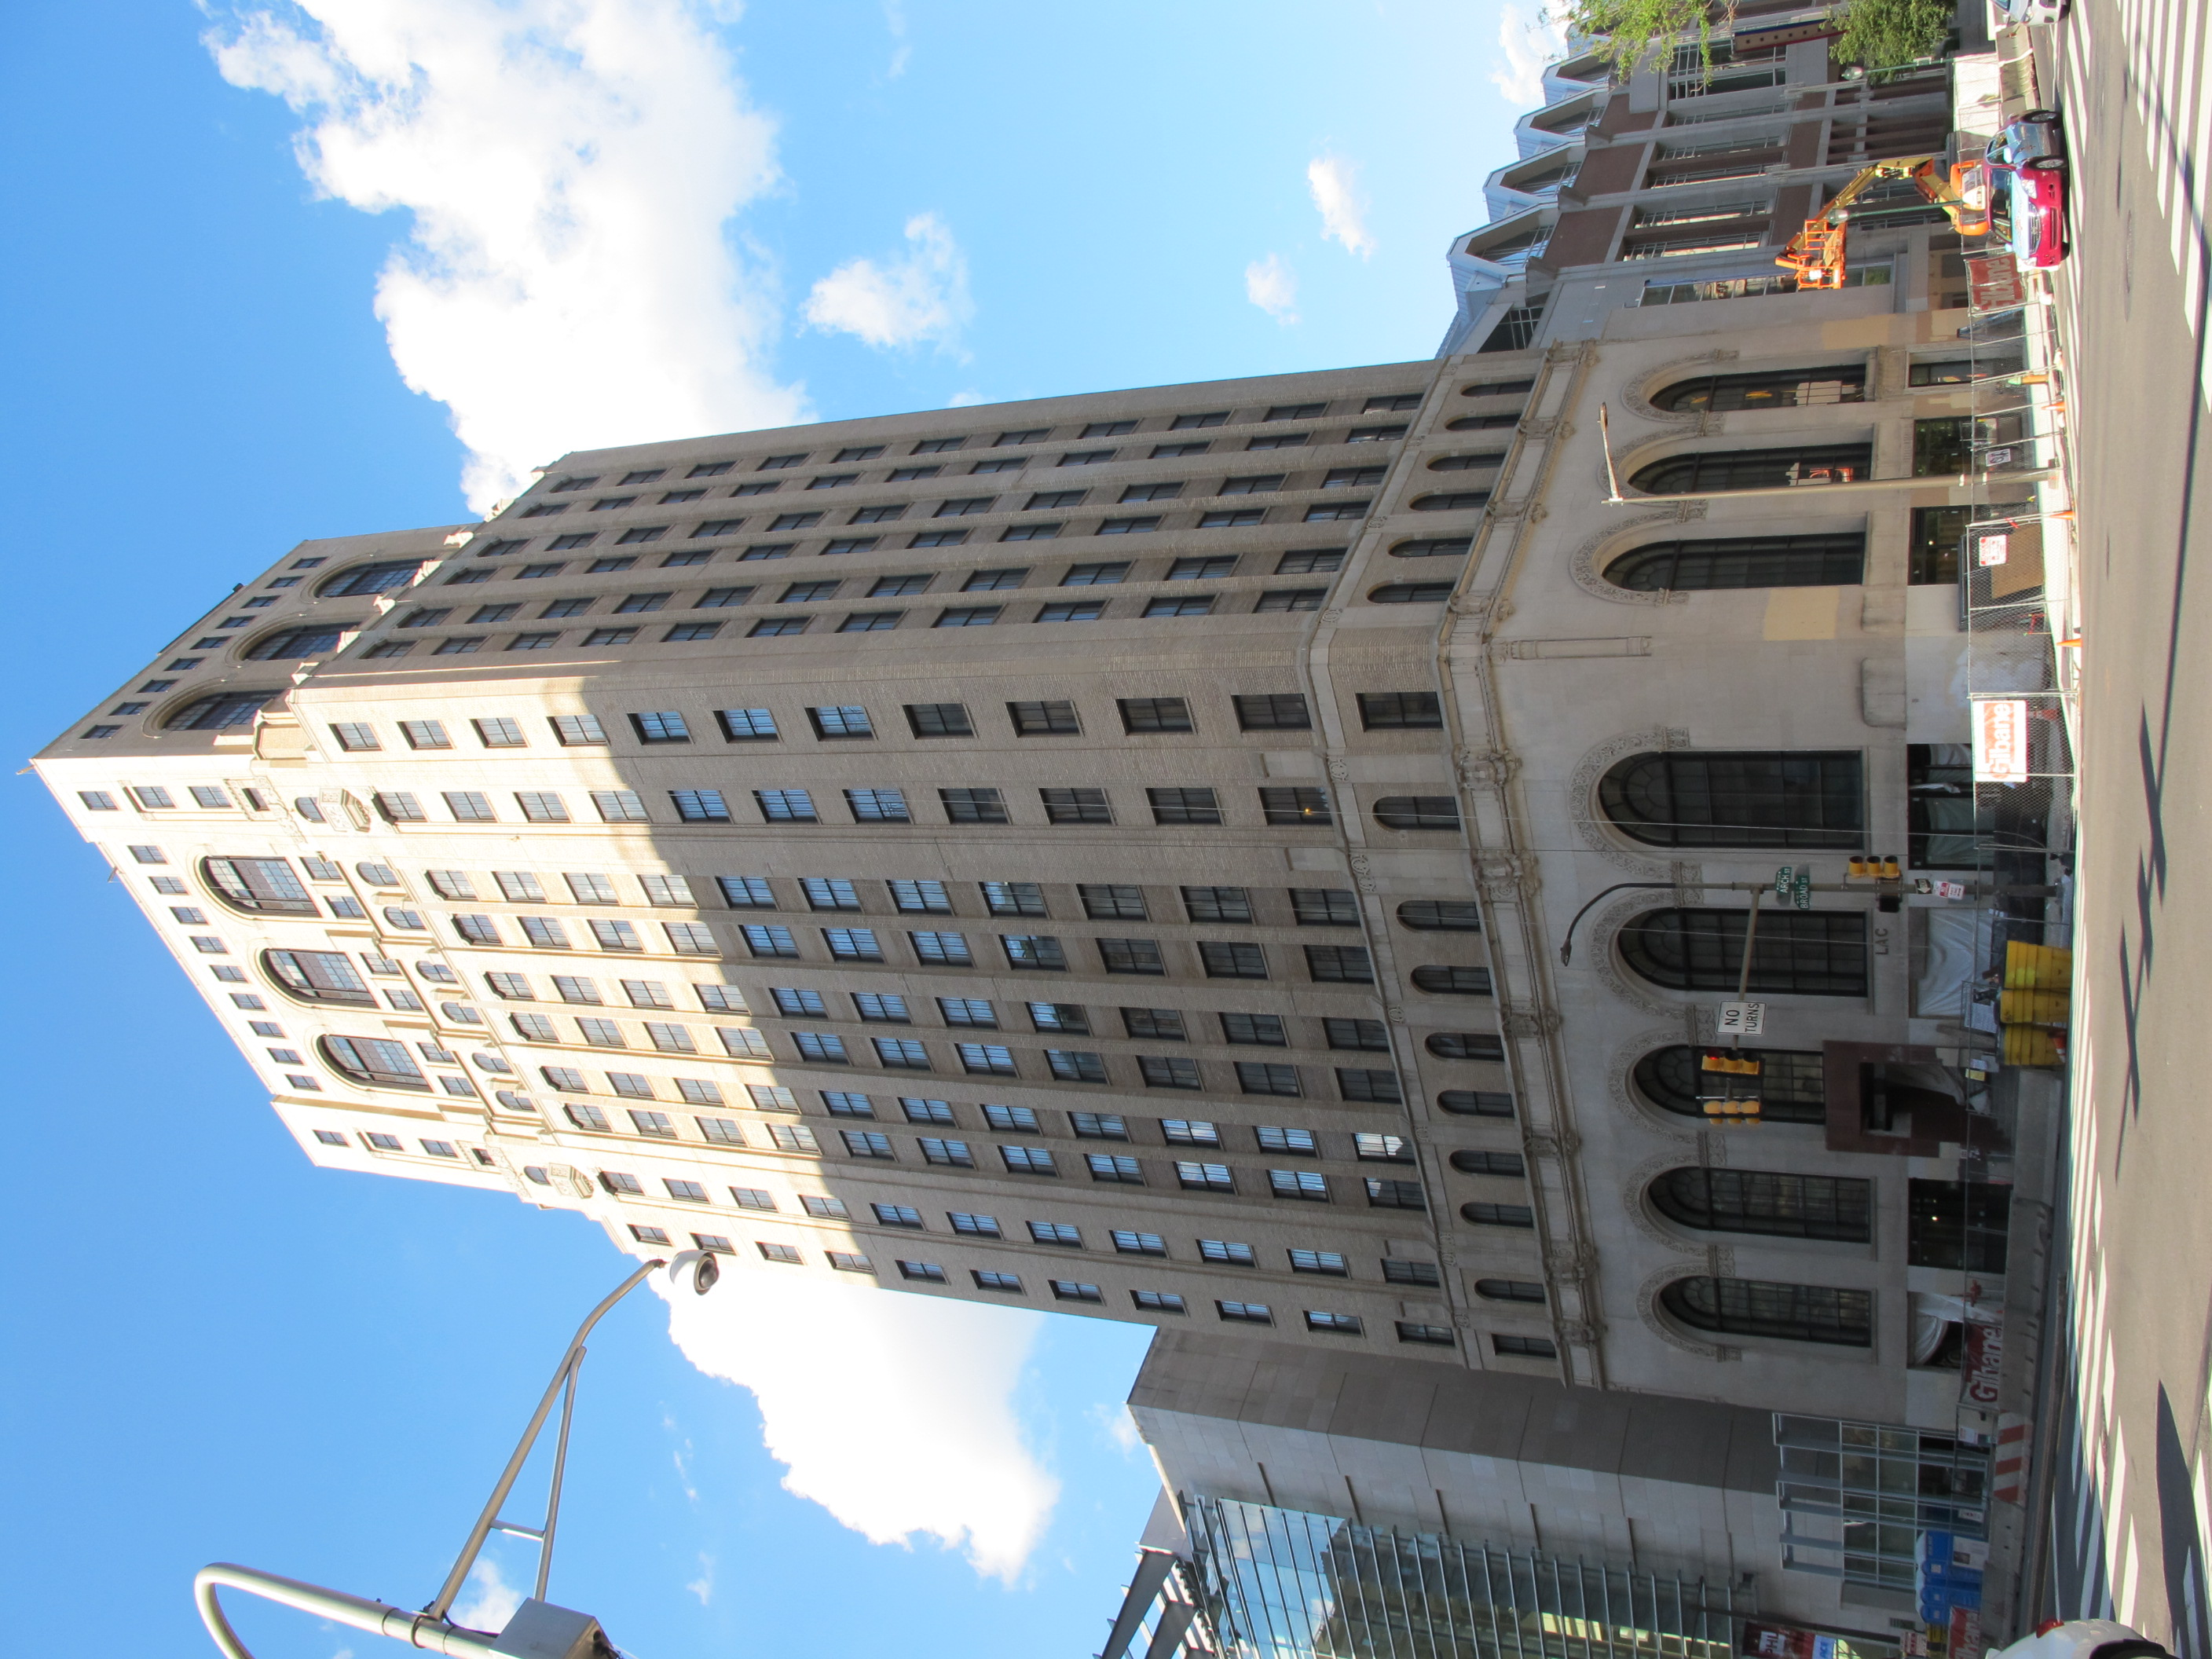 Liberty Title and Trust building at Broad and Arch will reopen as an Aloft hotel.